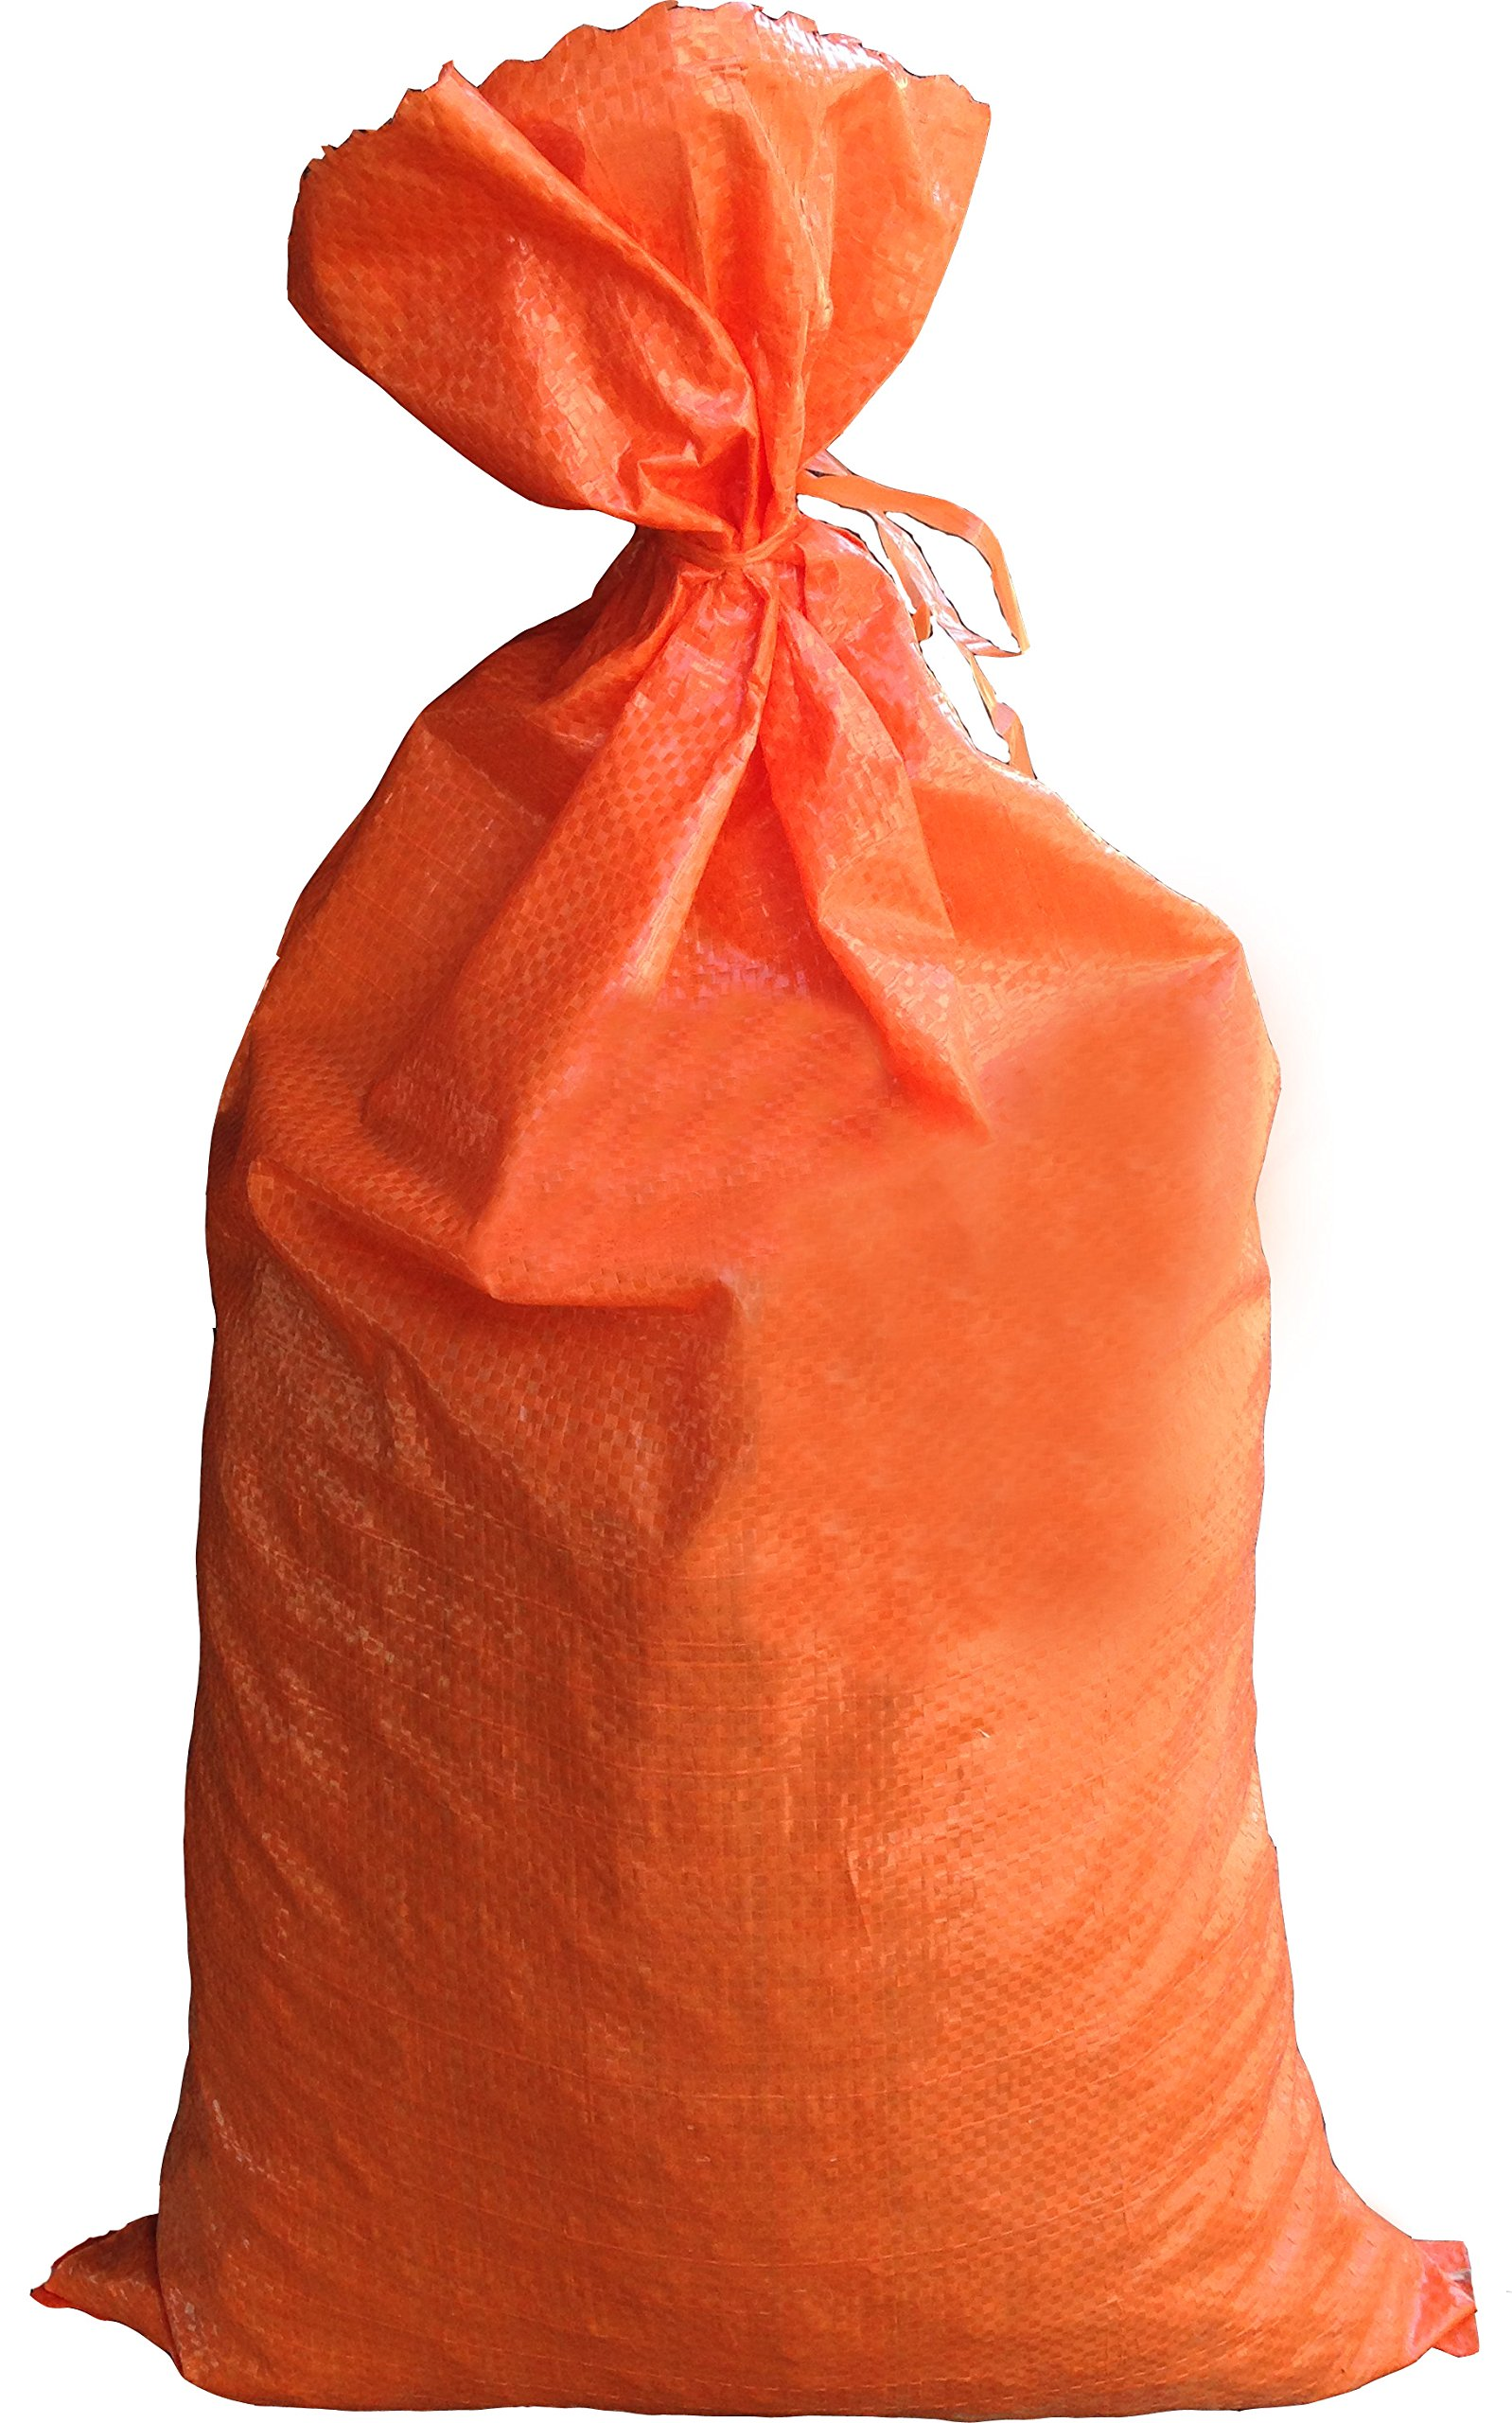 Sandbags for Flooding - Size: 14'' x 26'' - Color: Orange - Sand Bag - Flood Water Barrier - Water Curb - Tent Sandbags - Store Bags by Sandbaggy (500 Sandbags)